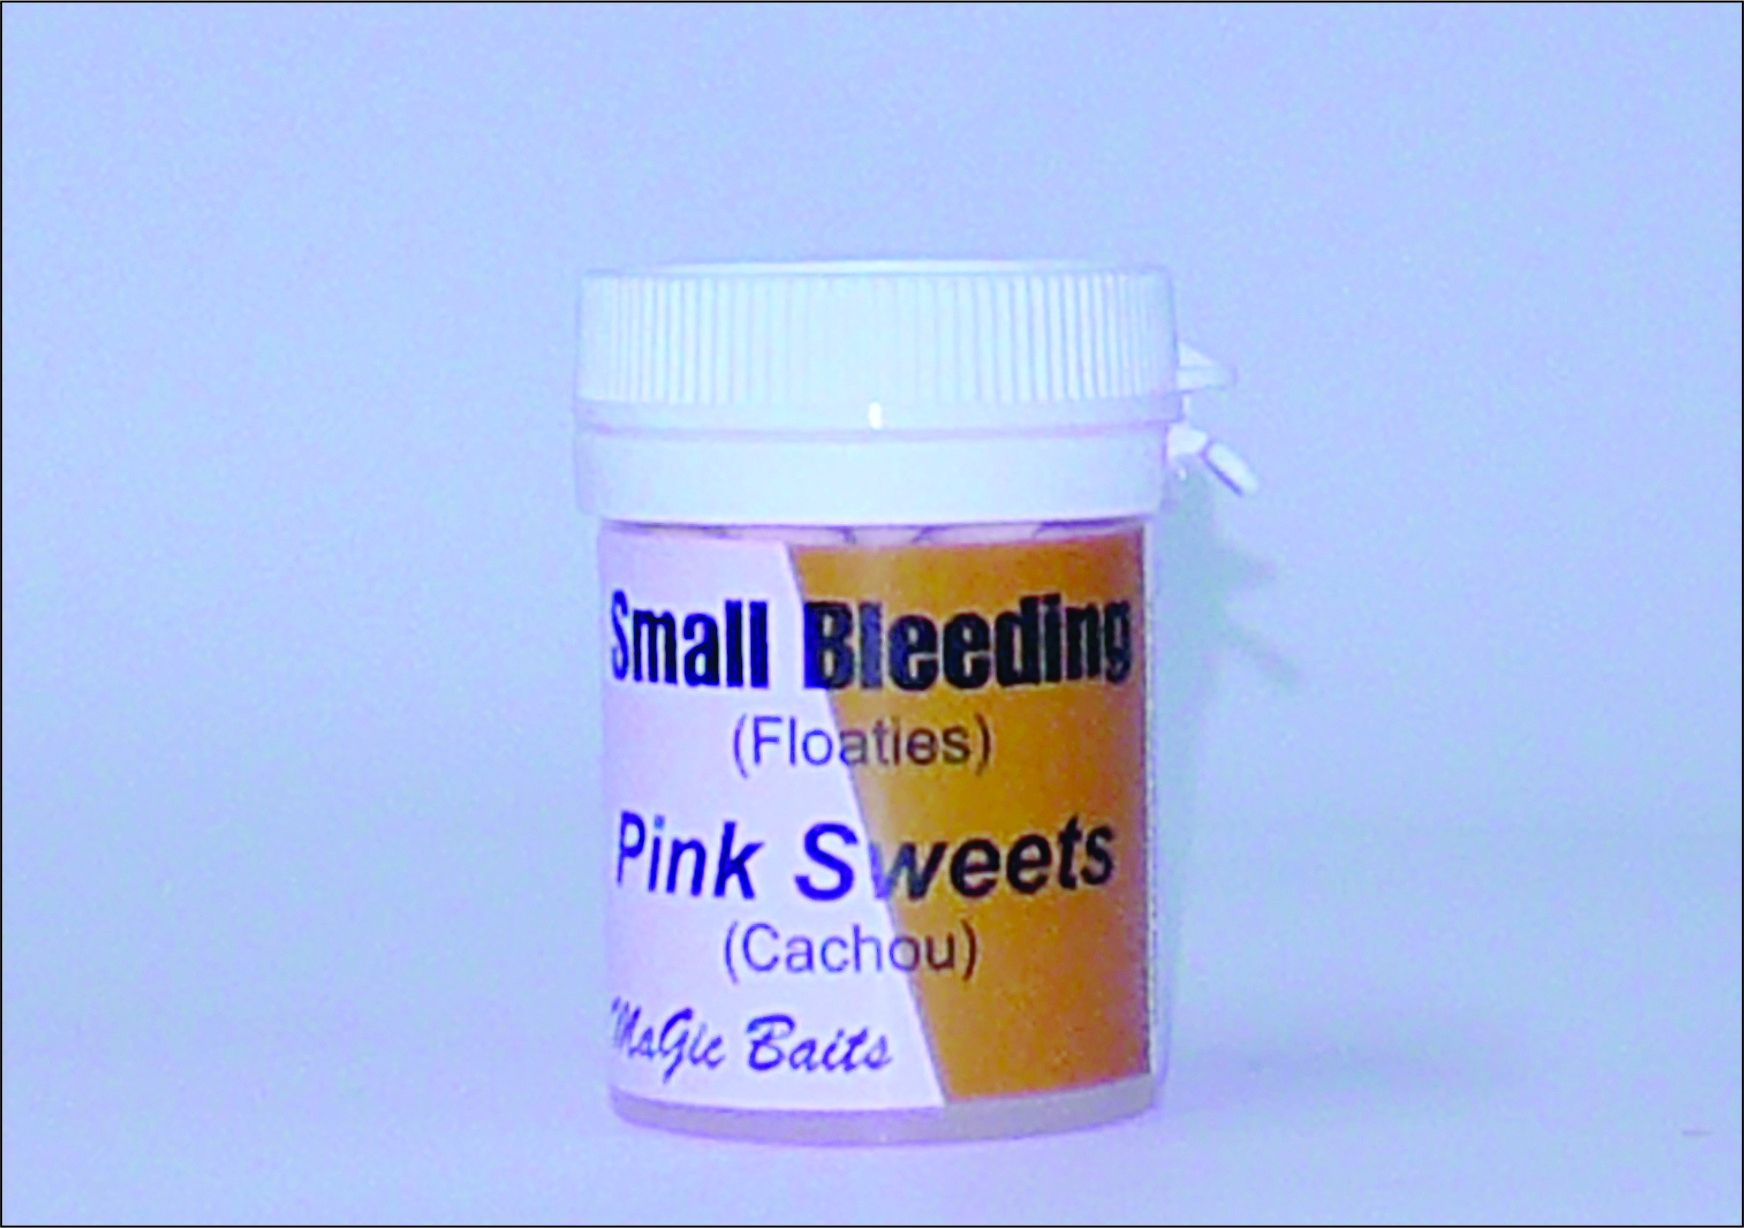 Pink Sweets Small Bleeding Floaties